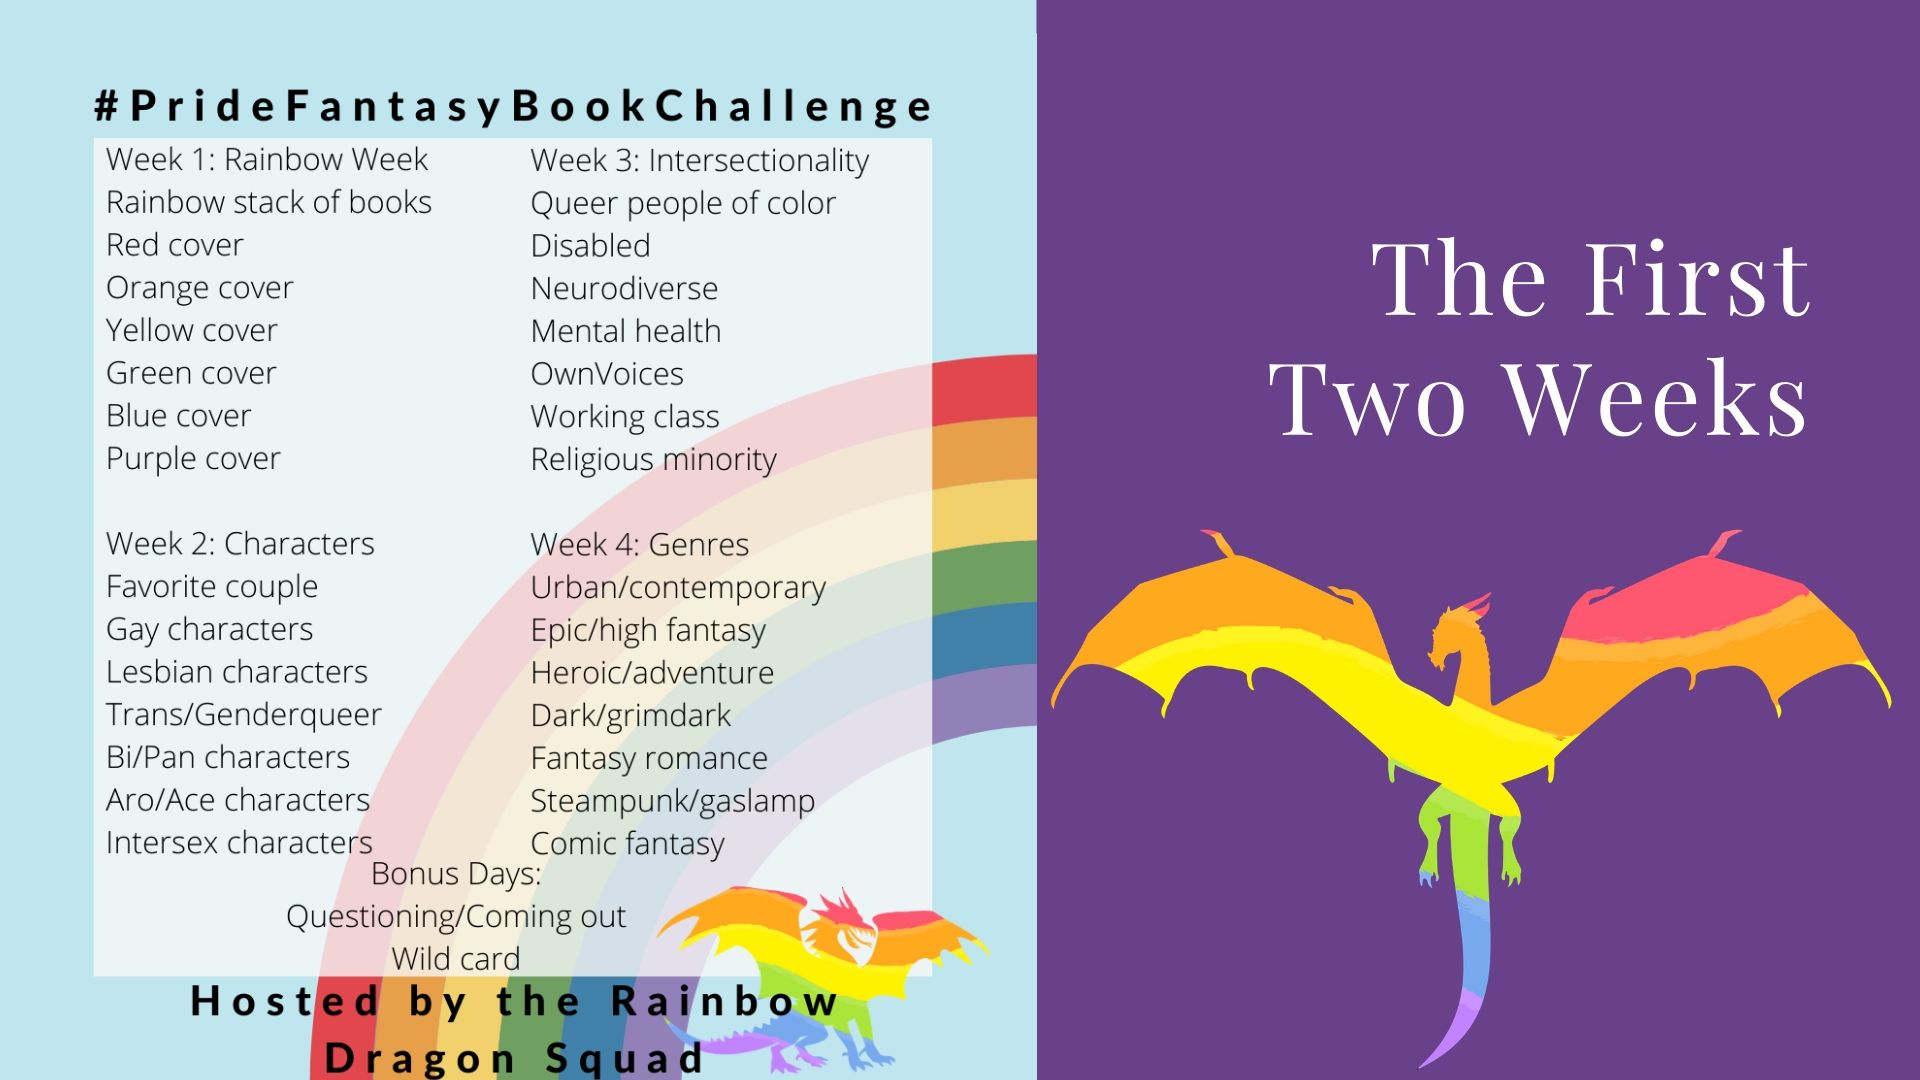 First Two Weeks of the Pride Fantasy Book Challenge